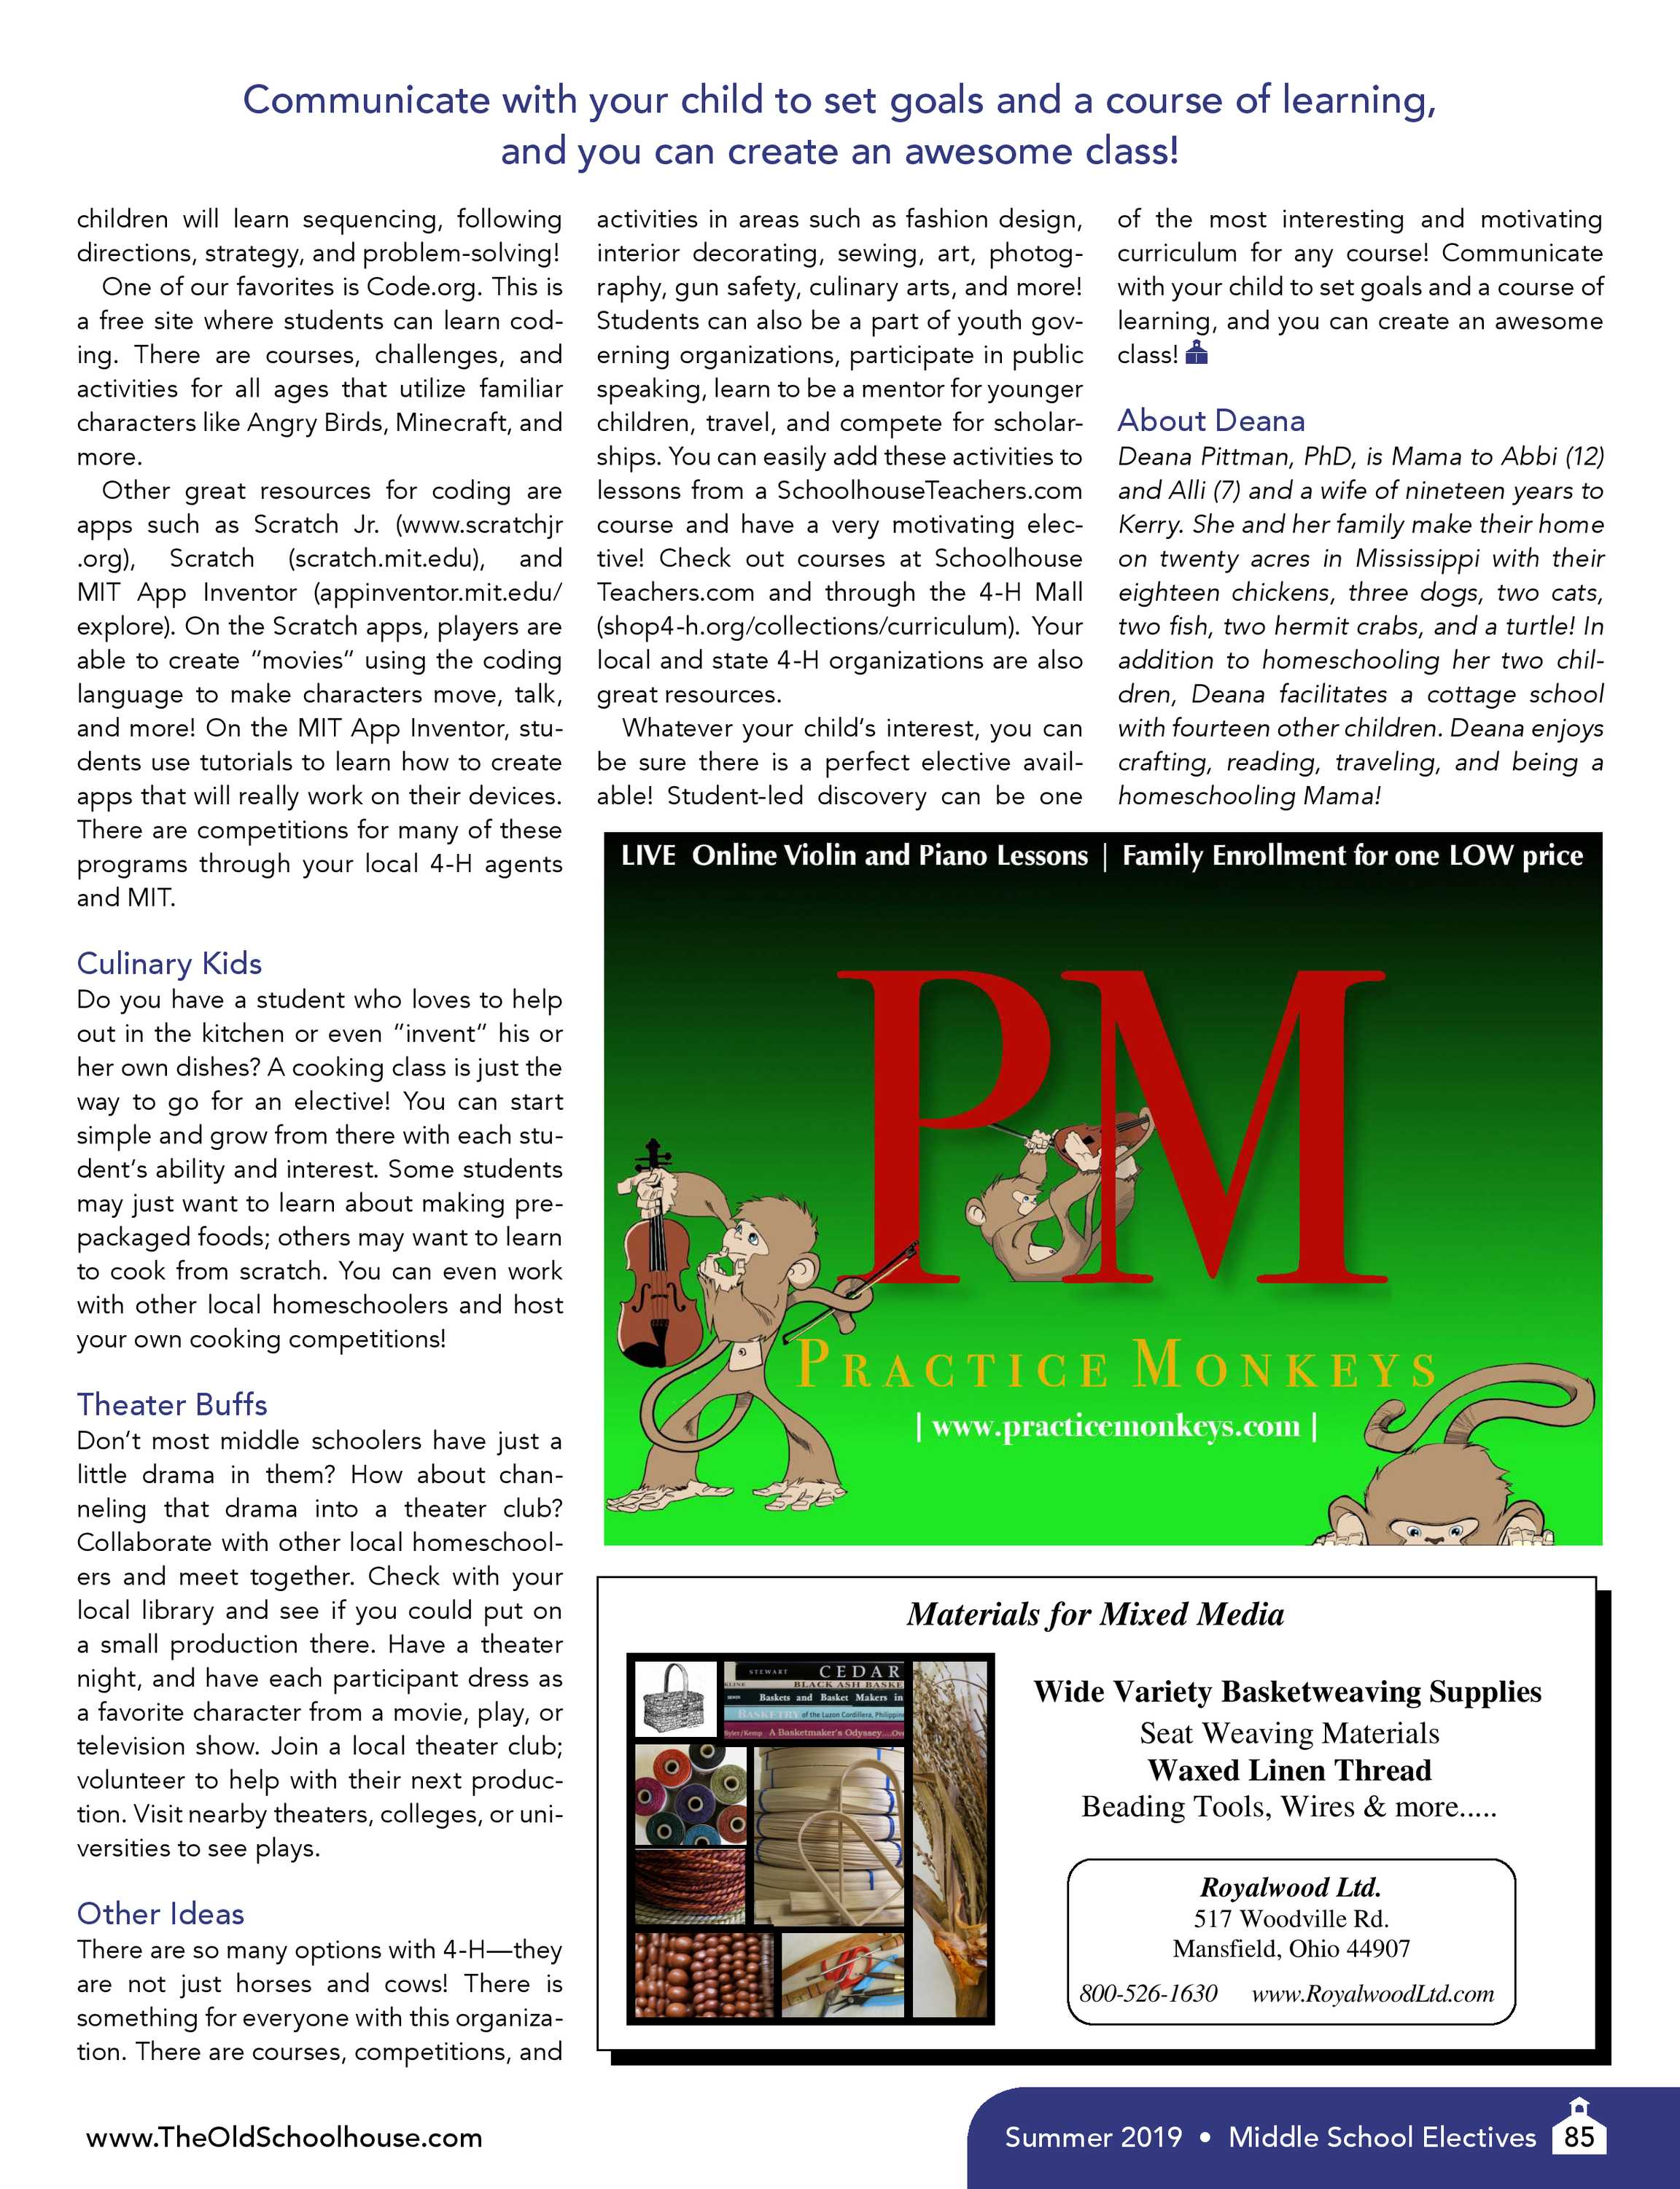 The Old Schoolhouse Magazine - Summer 2019 - page 84